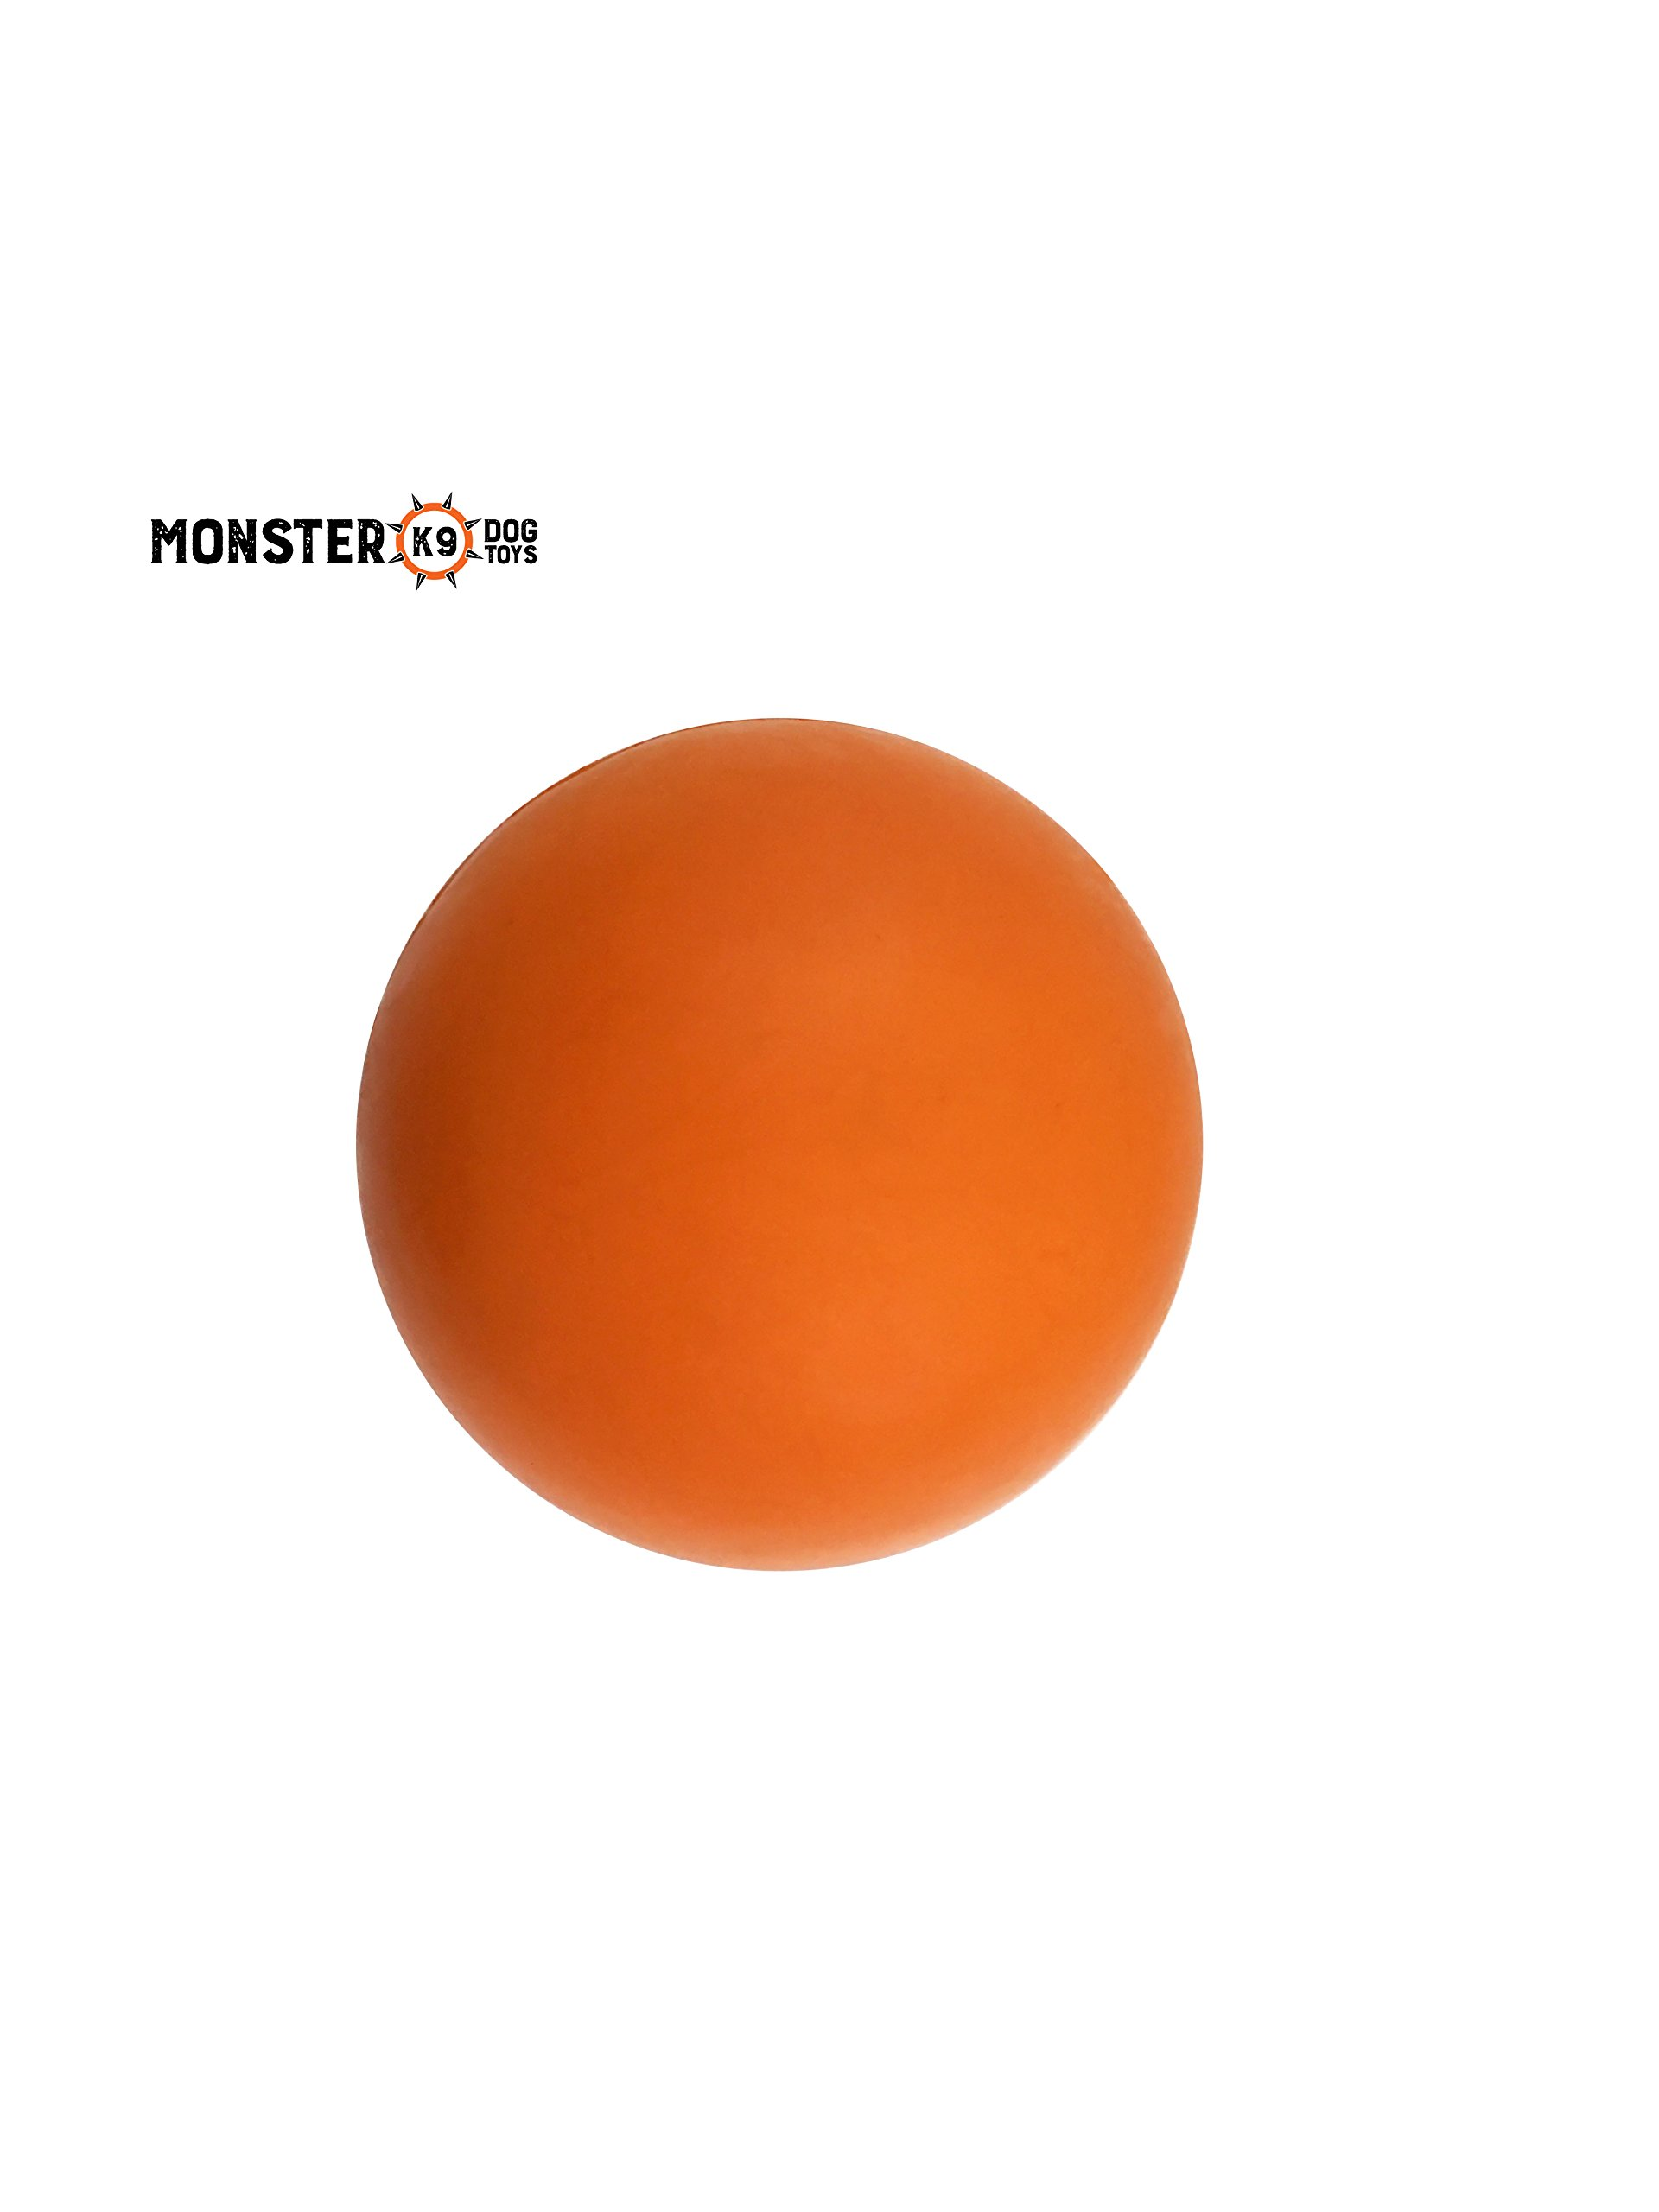 Indestructible Dog Ball'' - Lifetime Replacement Guarantee! - Tough Strong, 100% Non-toxic Chew Toy, Natural Rubber Baseball-sized Bouncy Dog Ball for Aggressive Chewers and Large Dogs